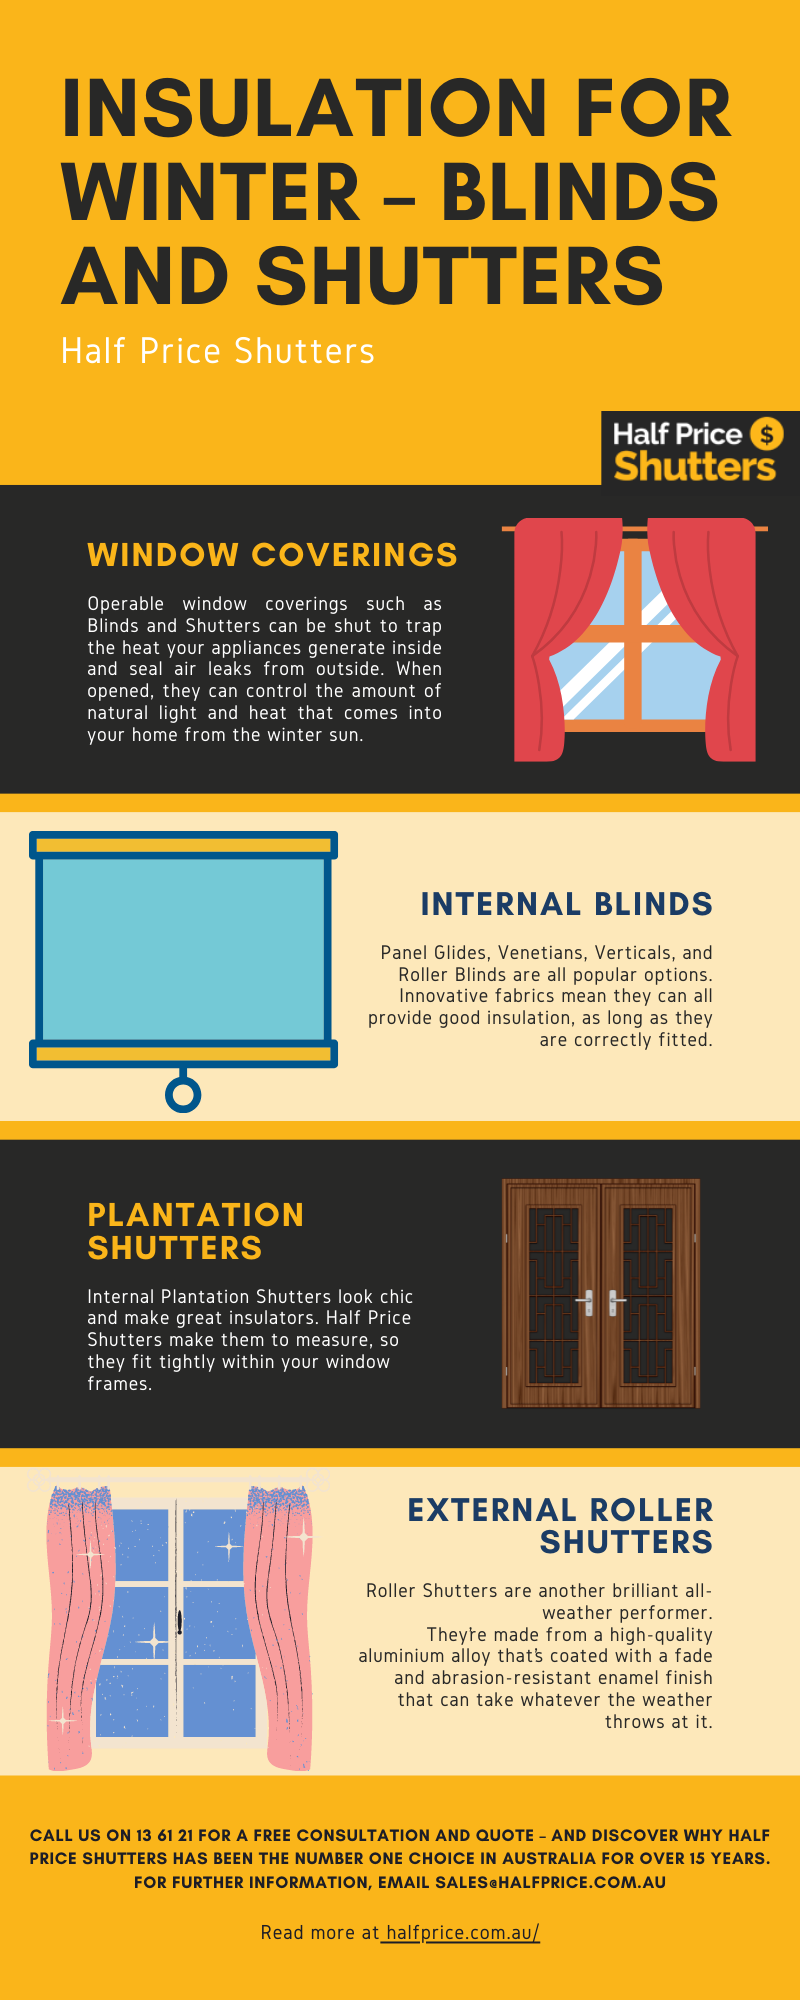 Insulation for Winter – Blinds, and Shutters